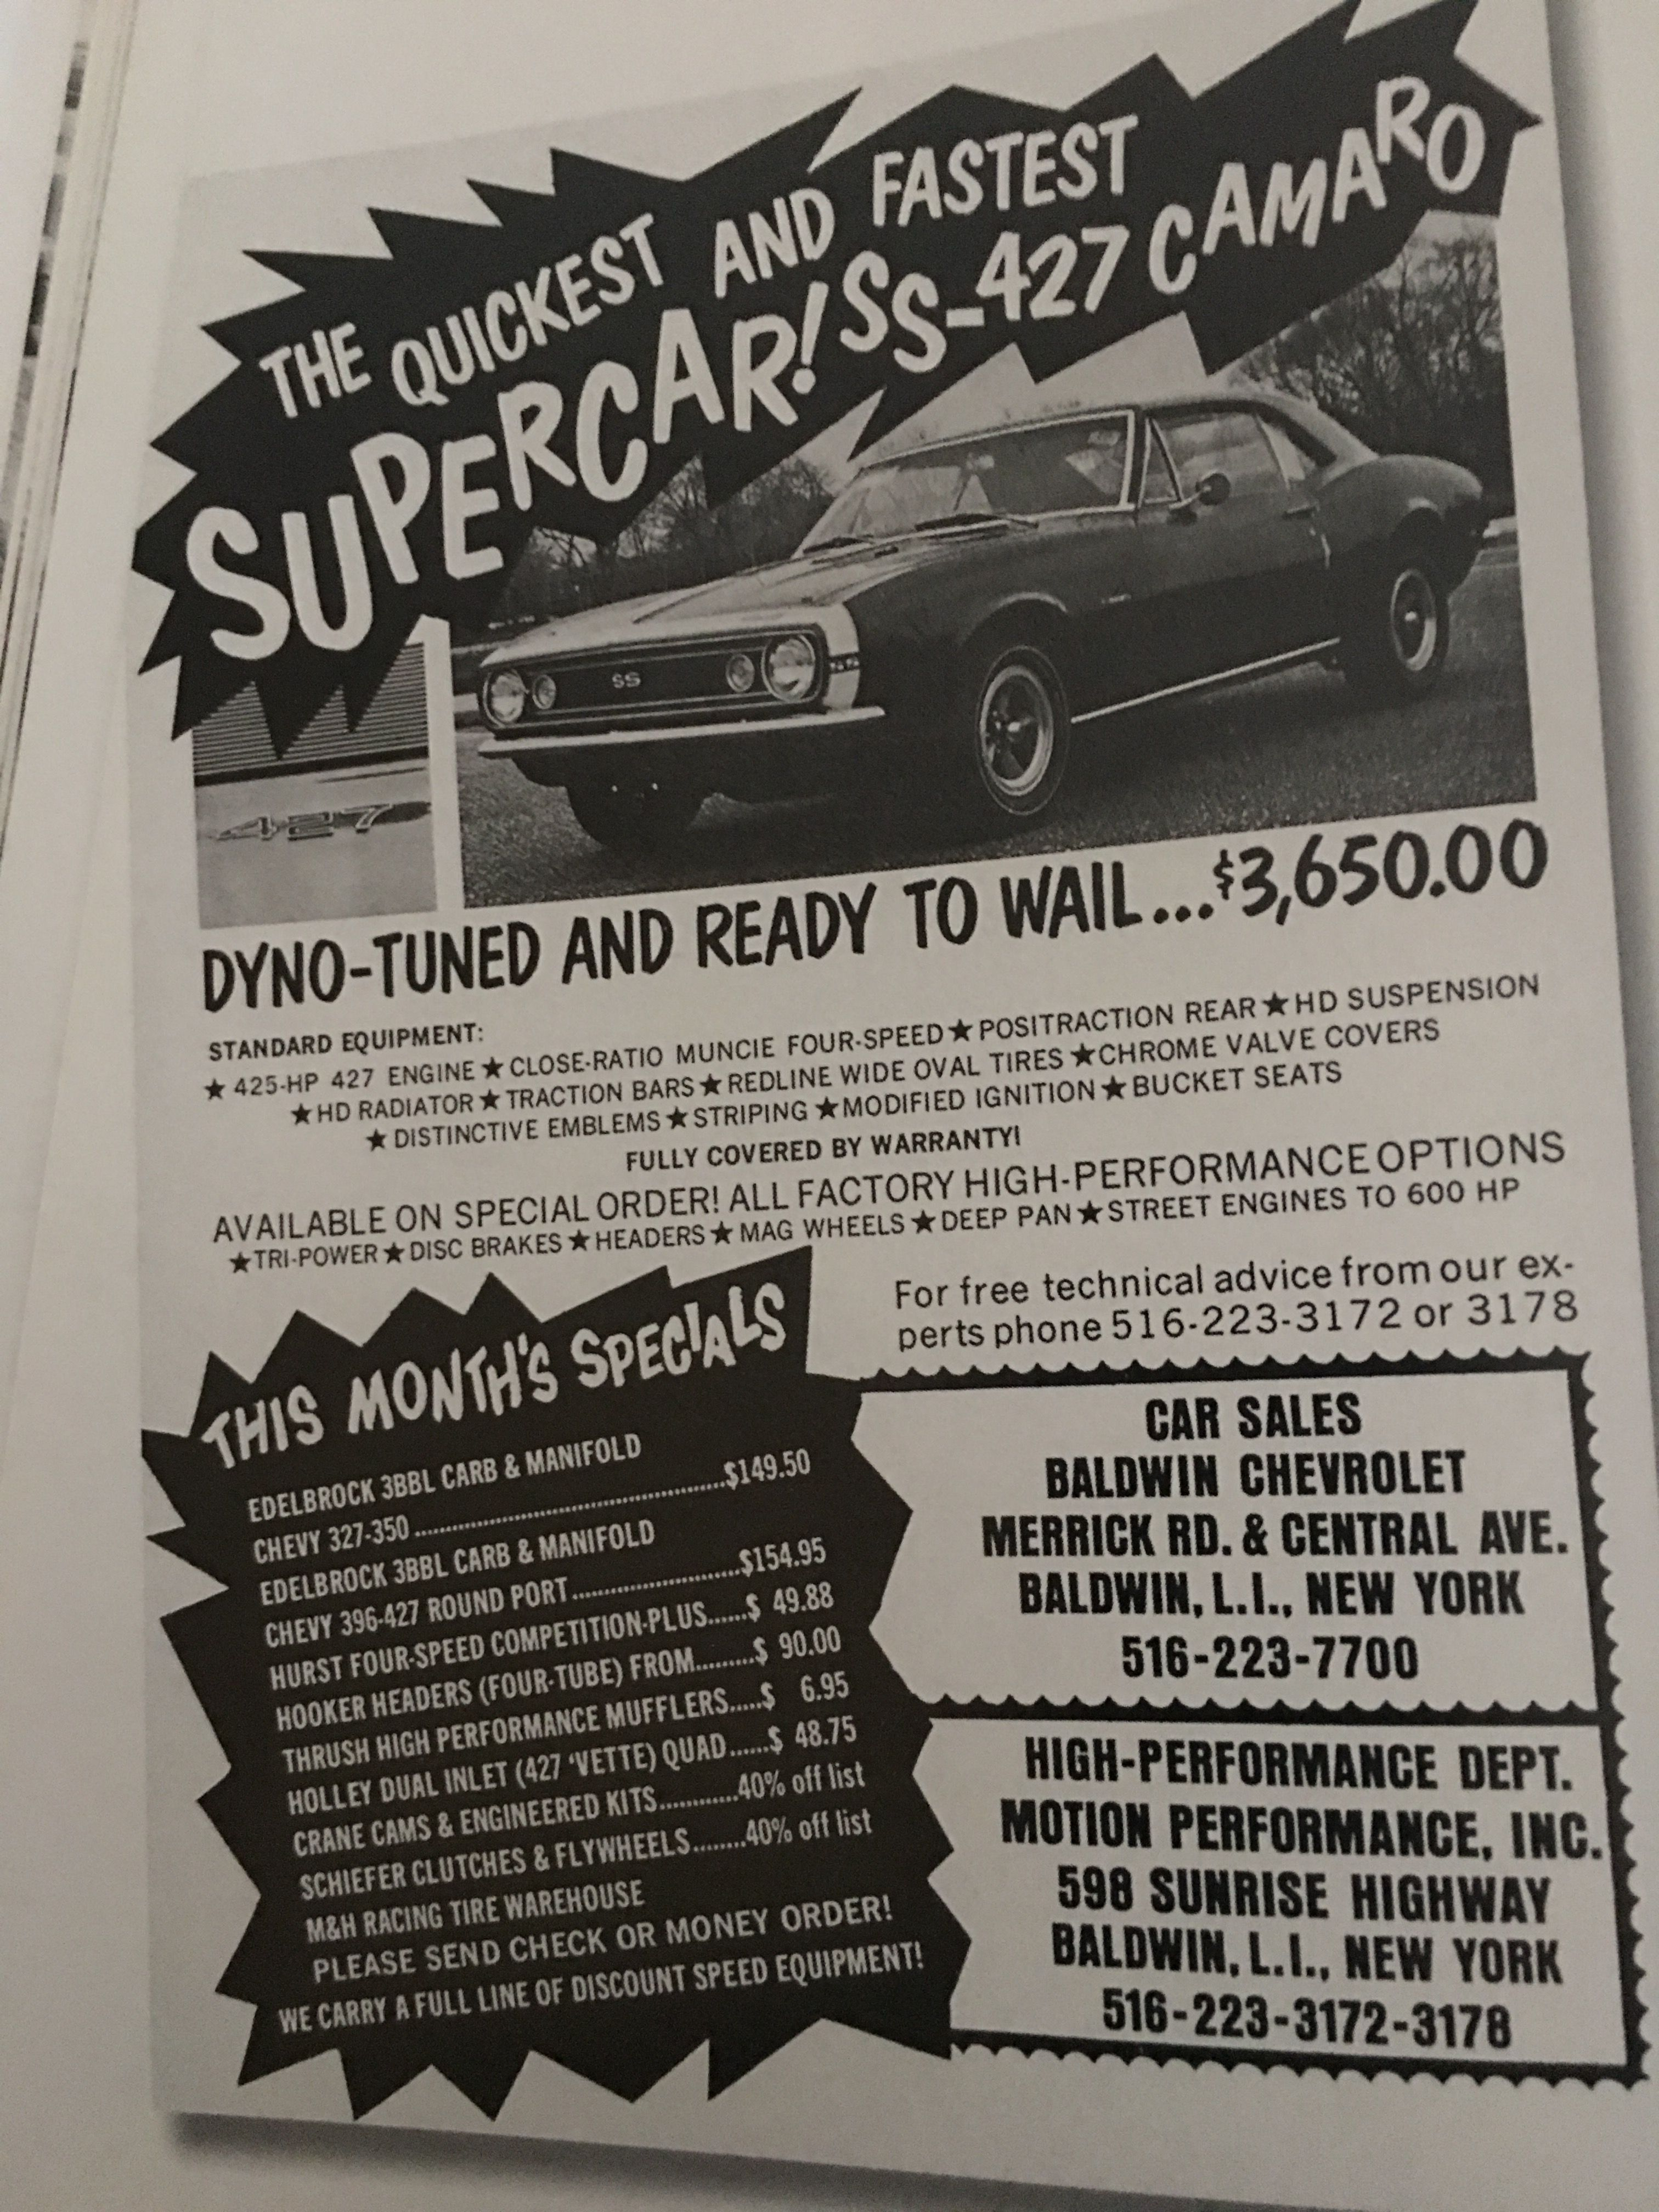 Baldwin Chevrolet High Performance Options Ad Muscle Car Ads Muscle Cars Camaro